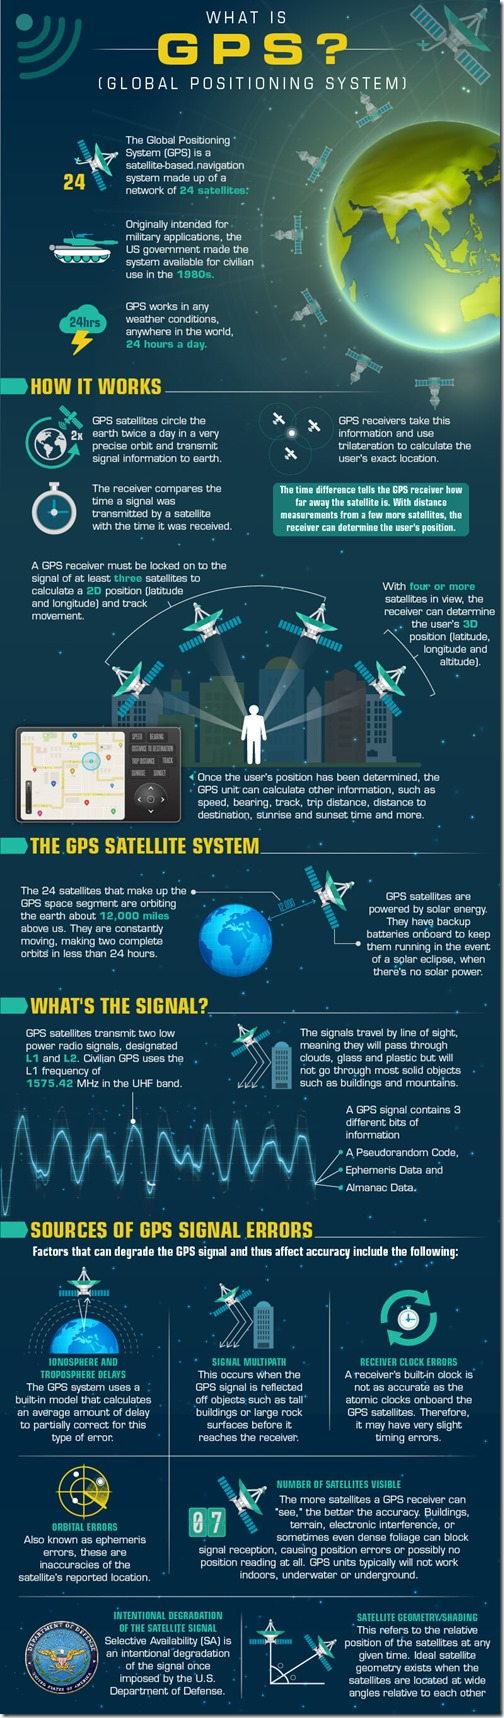 How-GPS-Works-01-1